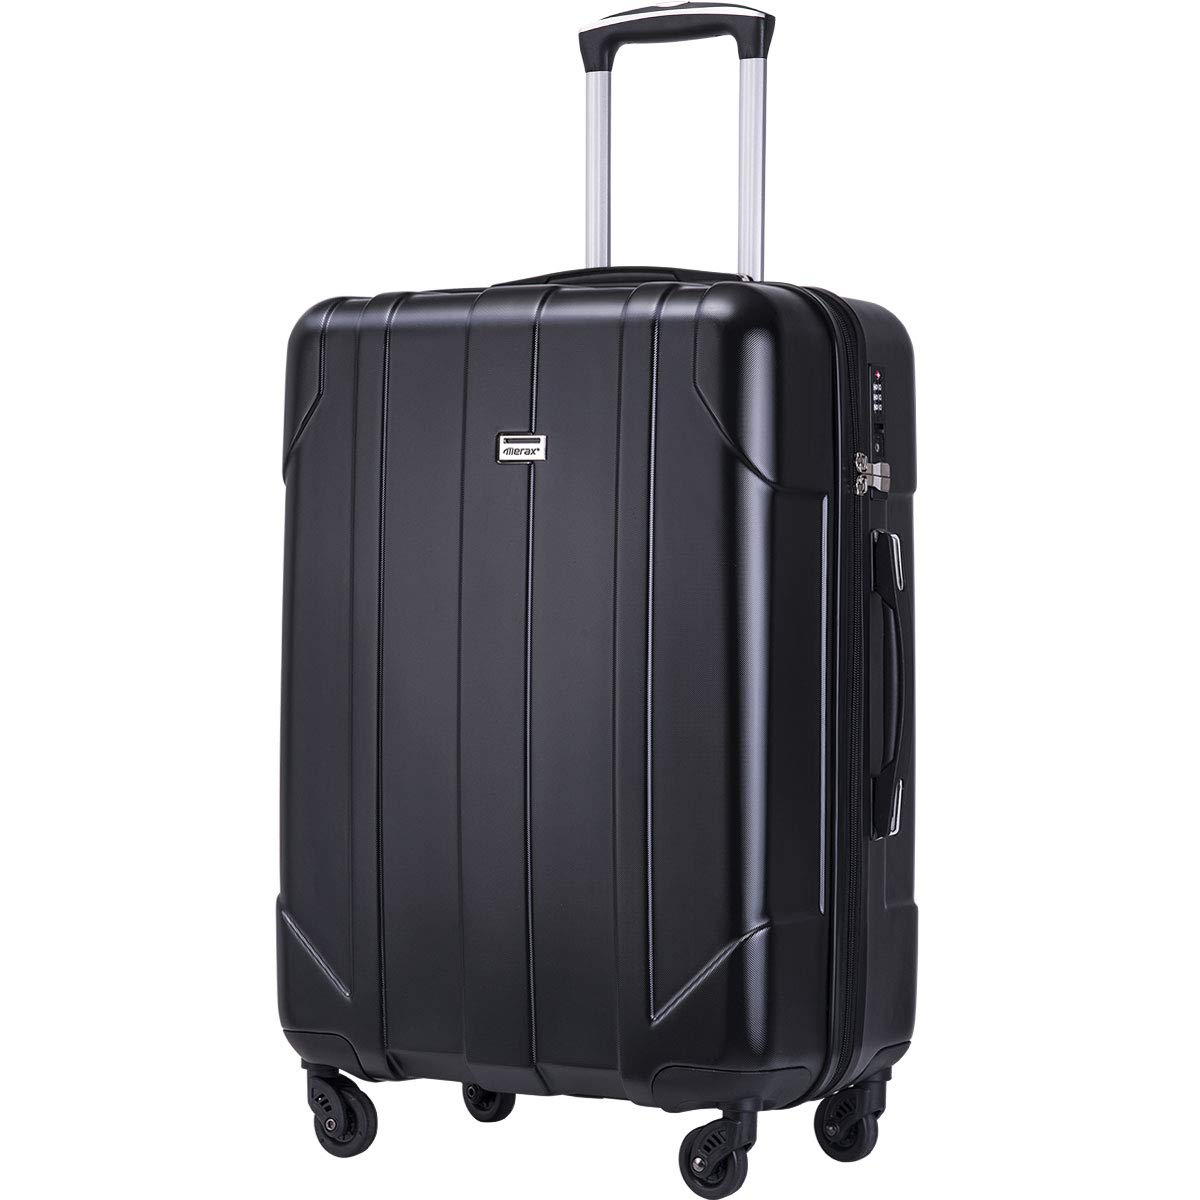 Merax Hardside Spinner Luggage with Built-in TSA Lock Lightweight Suitcase 20inch 24inch and 28 inch Available (Black, 24-Checking in)